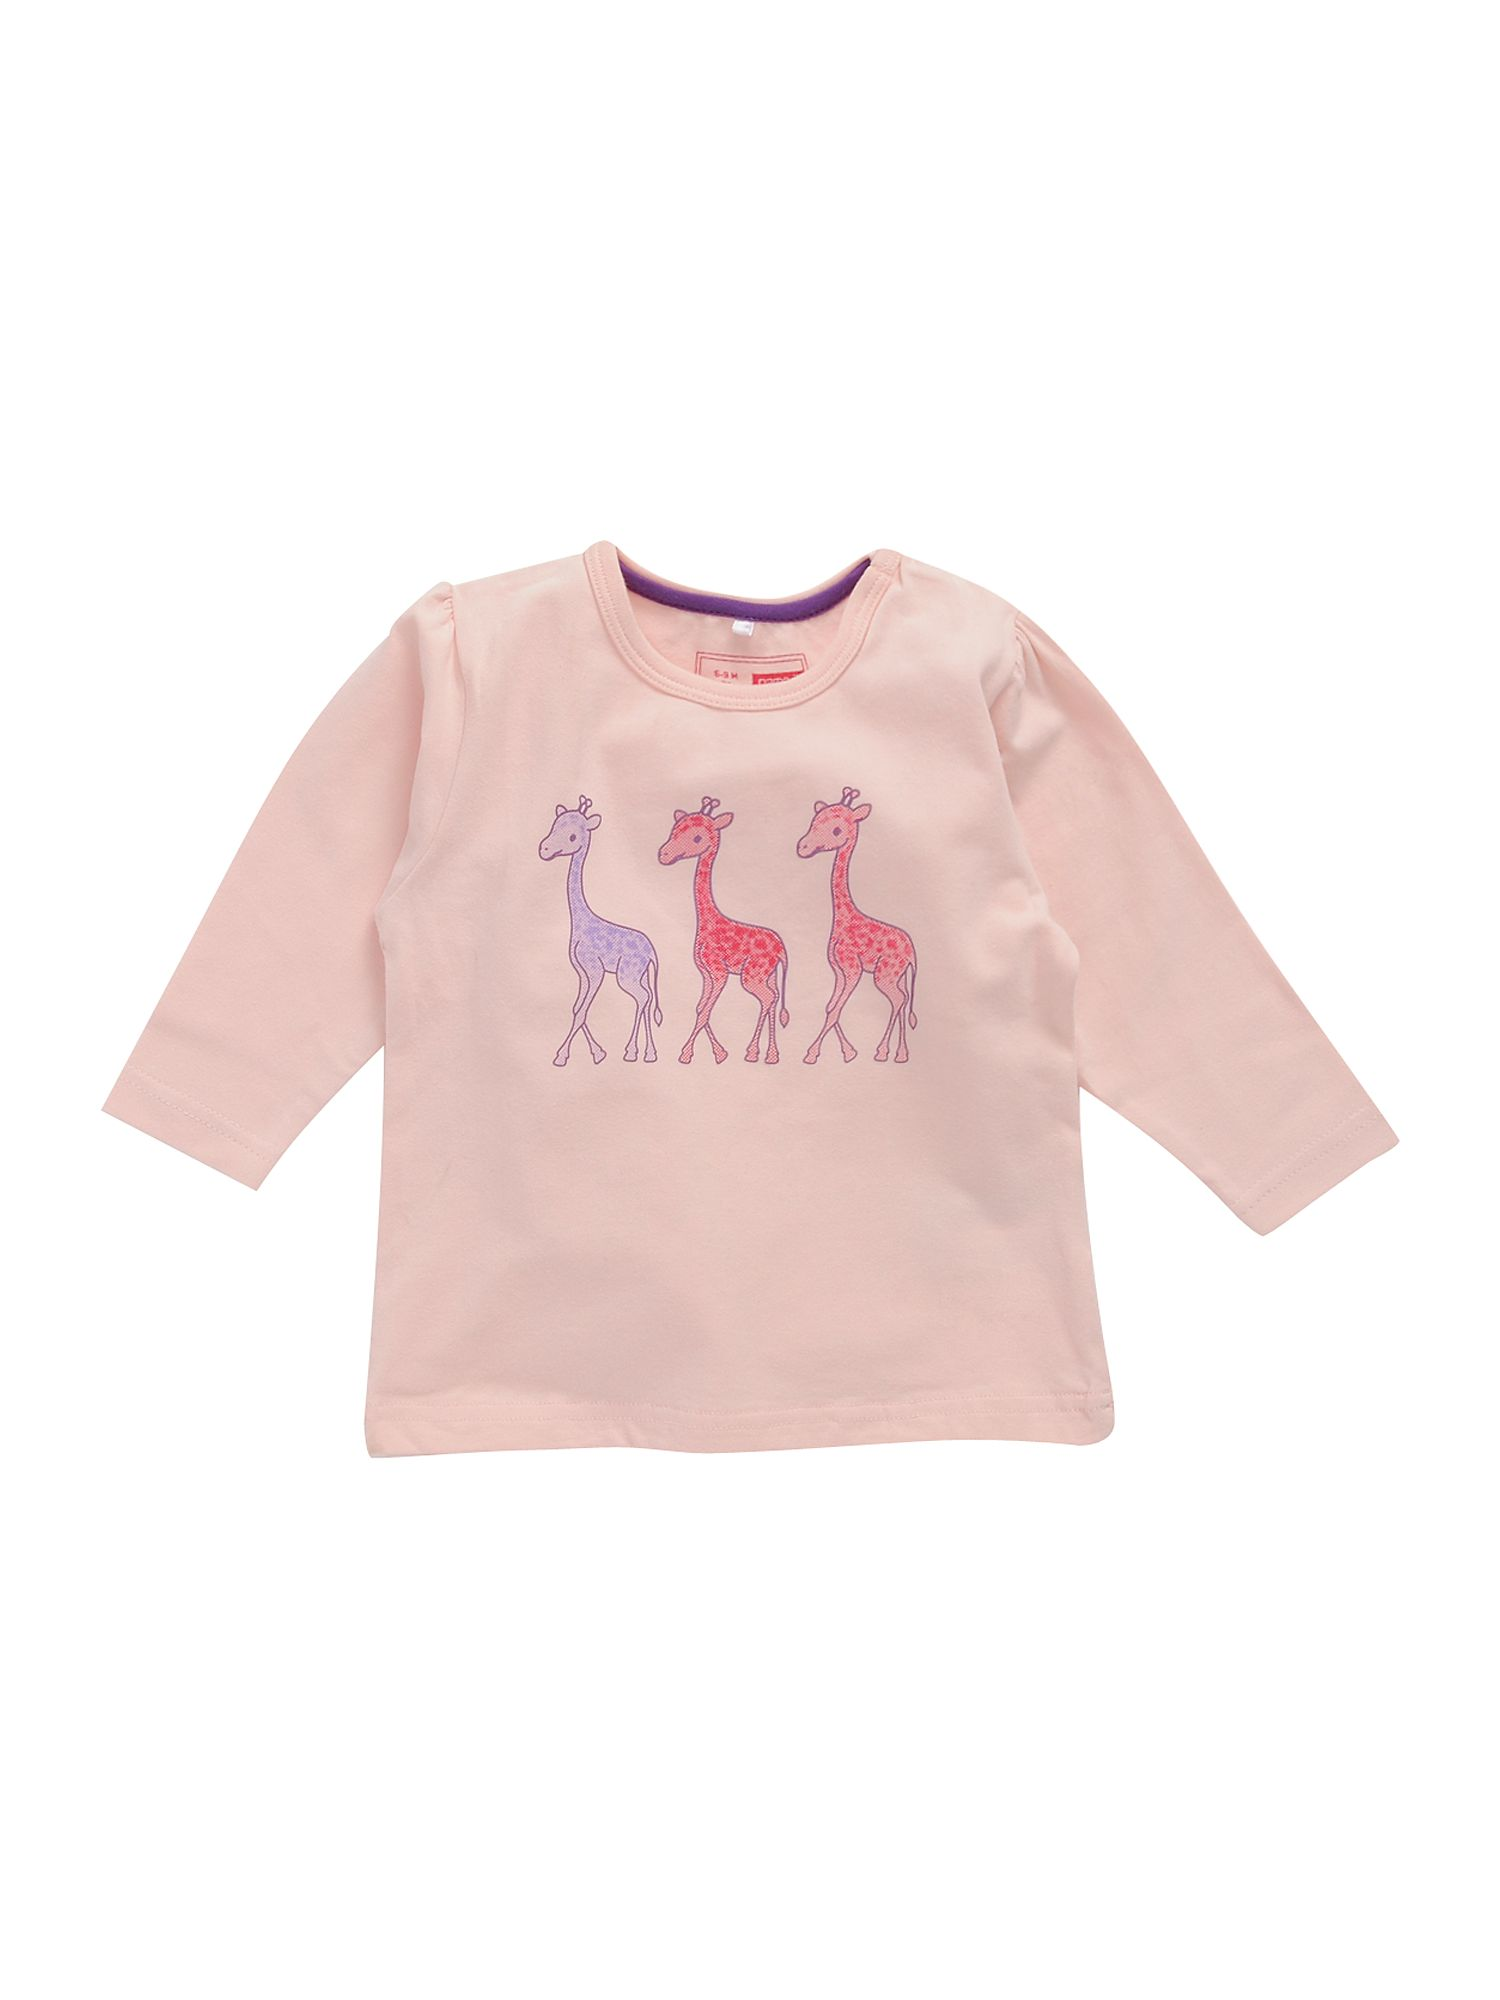 Name It Long-sleeved giraffe print T-shirt Pastel Pink product image